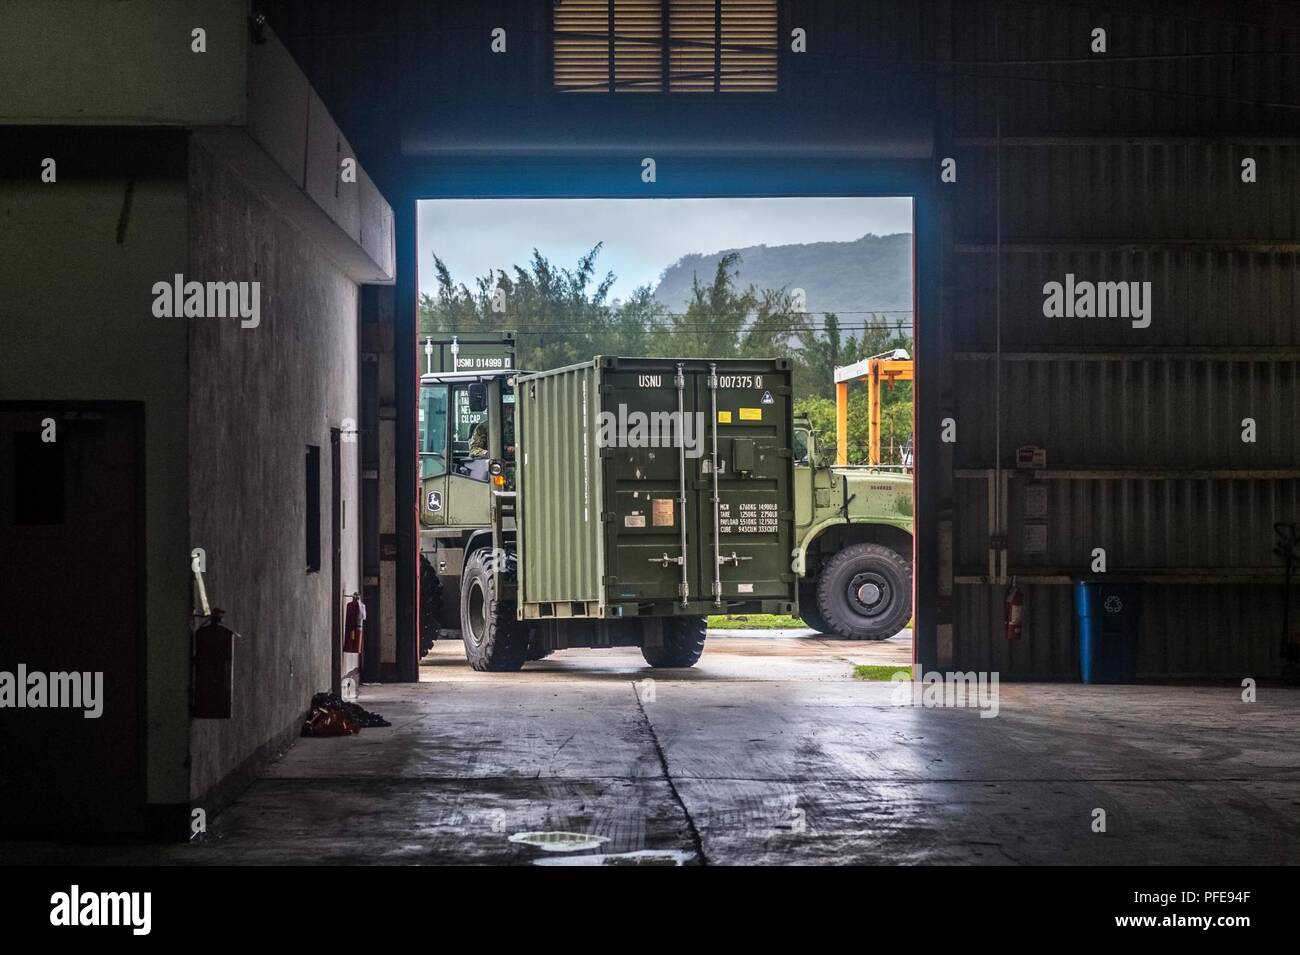 Santa Rita, Guam (June 9, 2018) Equipment Operator 2nd Class Corey Caron, assigned to Naval Mobile Construction Battalion (NMCB) 11, uses an 12k forklift to move a container with gear for the 30th Naval Construction Regiment (NCR) aboard Naval Base Guam. The 30th NCR is conducting a homeport shift from Port Hueneme, Calif. to Guam to improve command and control of subordinate units operating in the Indo-Pacific region. - Stock Image